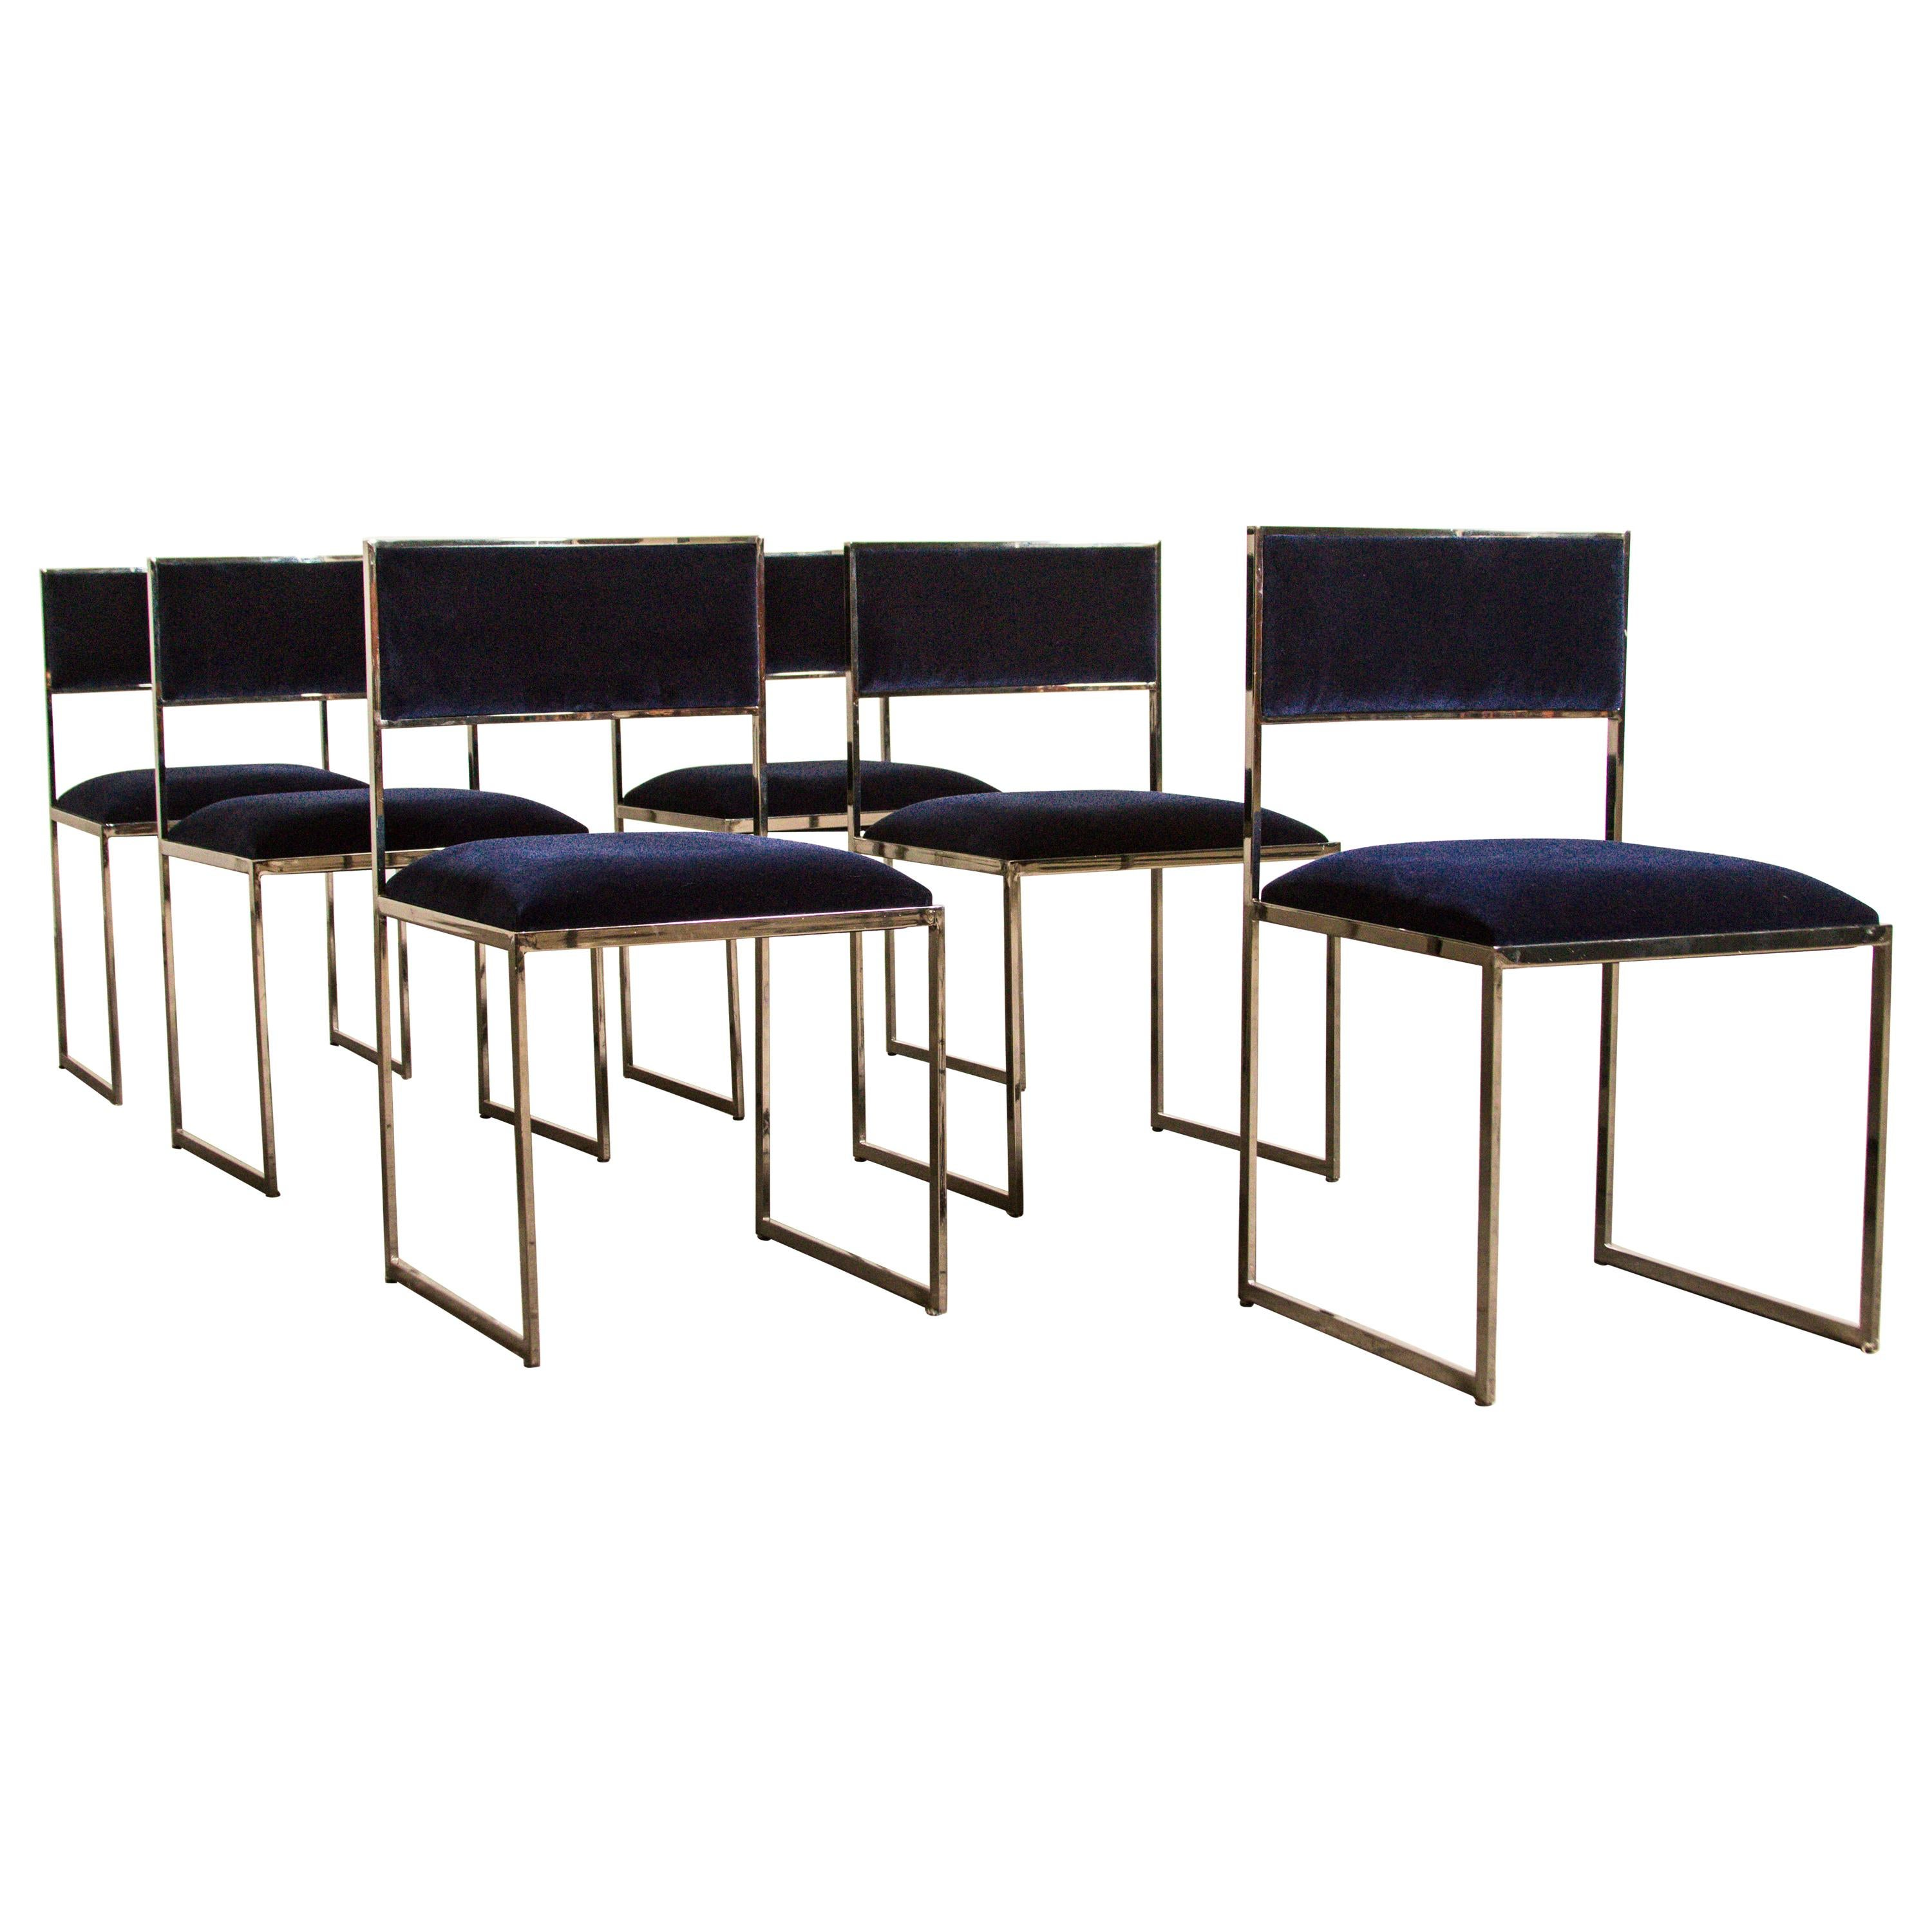 Willy Rizzo Dining Chairs, Set of 6, 1970, Italy